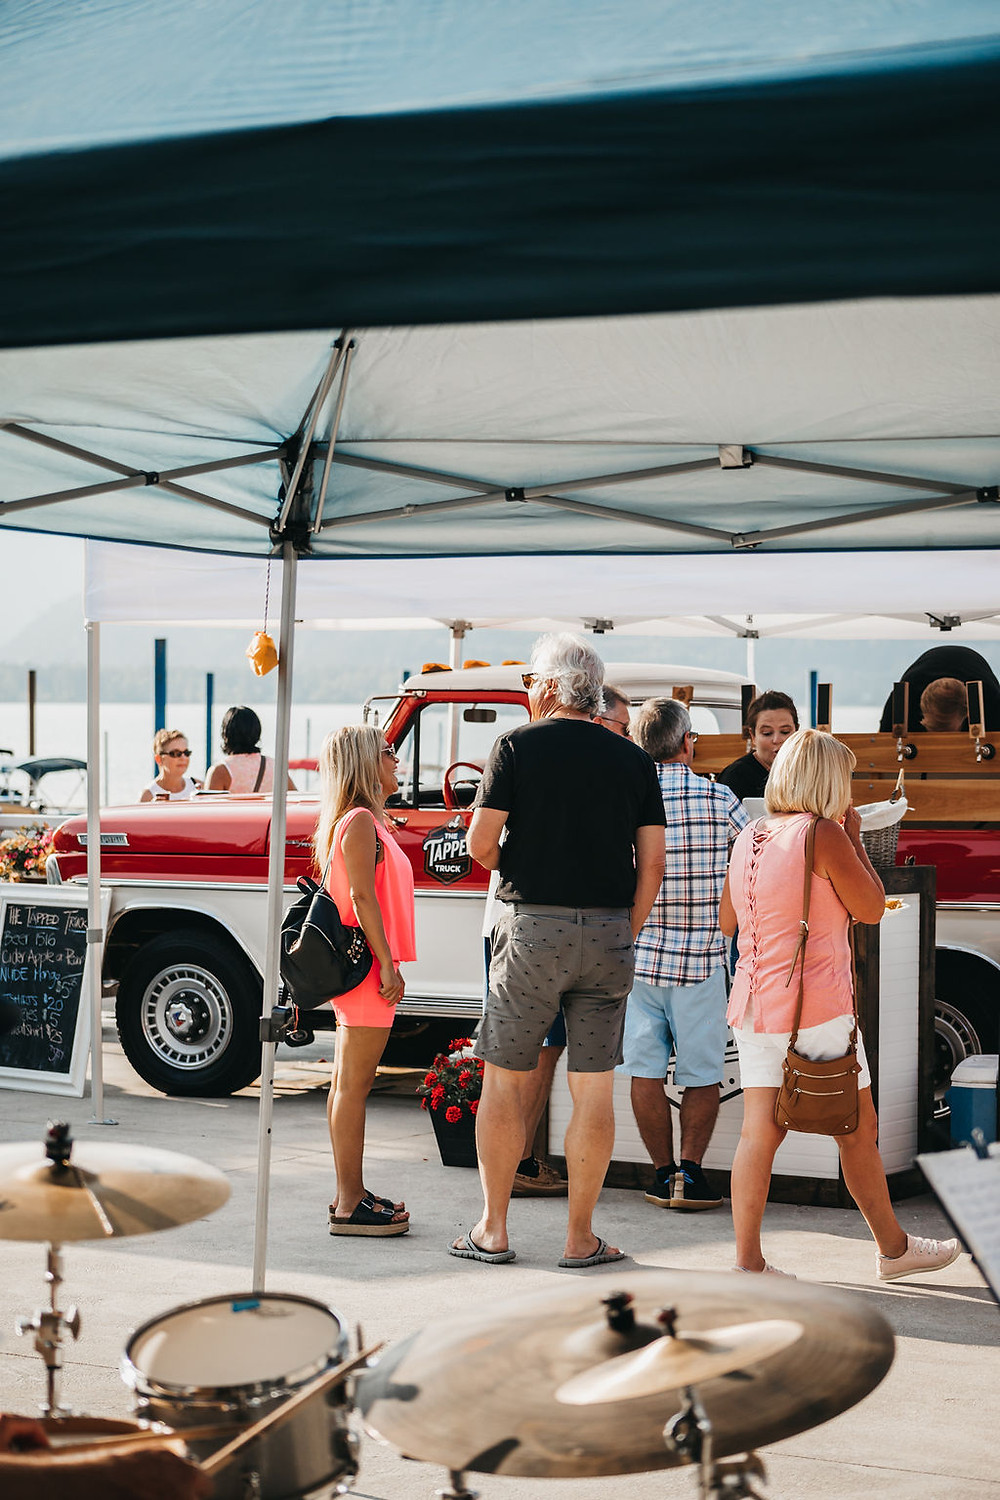 Canadian beer truck entertains gusts at a local party in the Shuswap